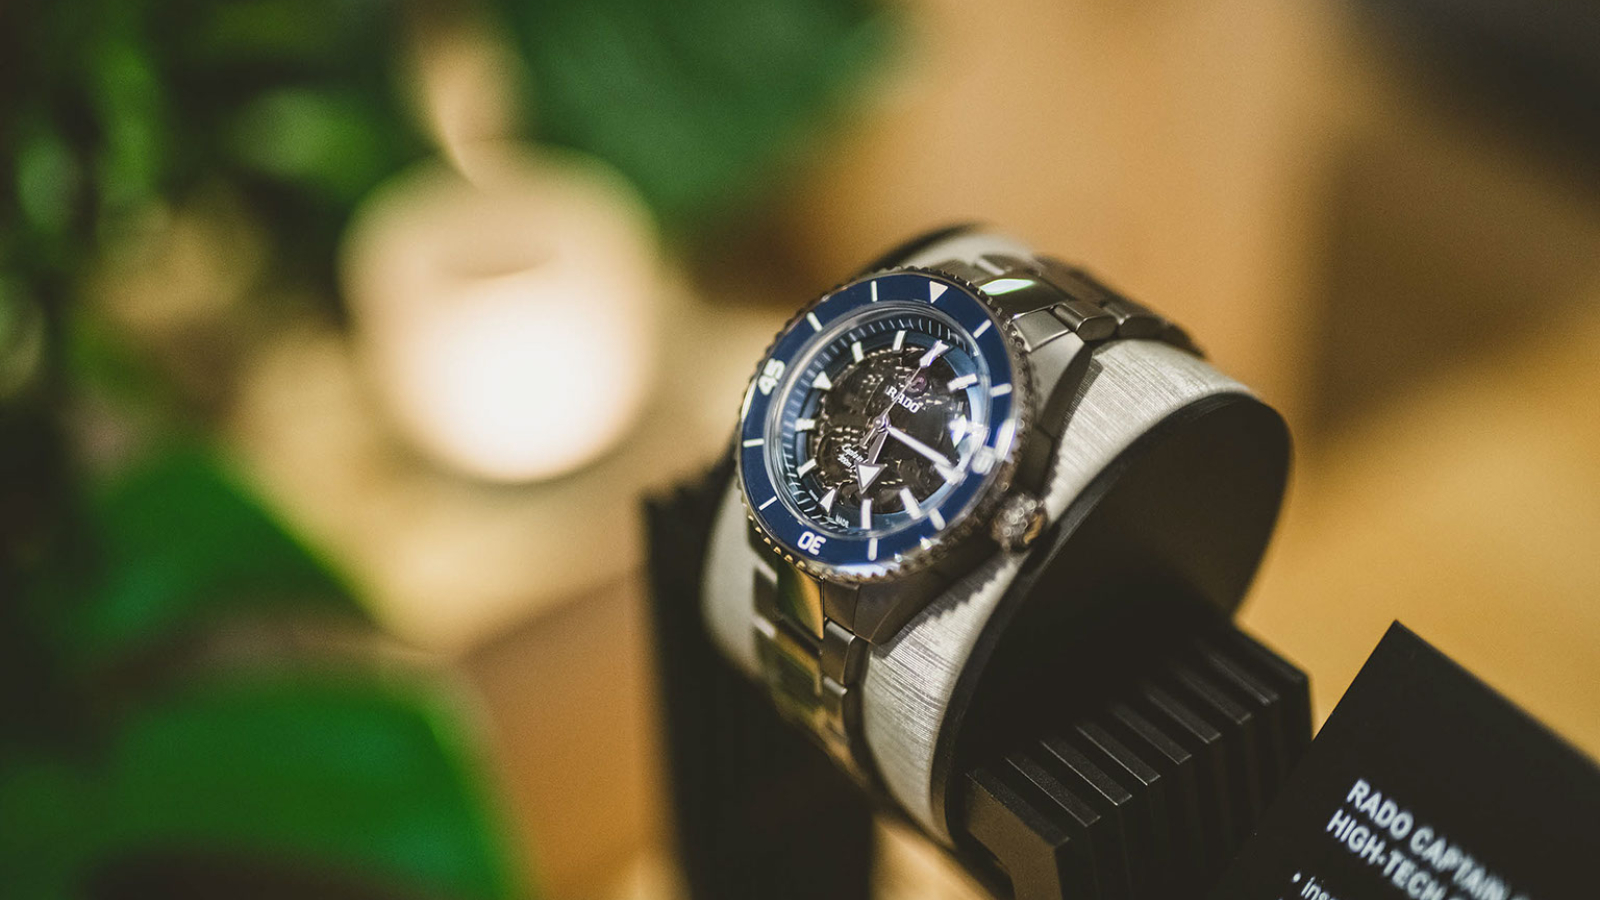 PREVIEW ON A WRIST CAPTAIN COOK HIGH-TECH CERAMIC